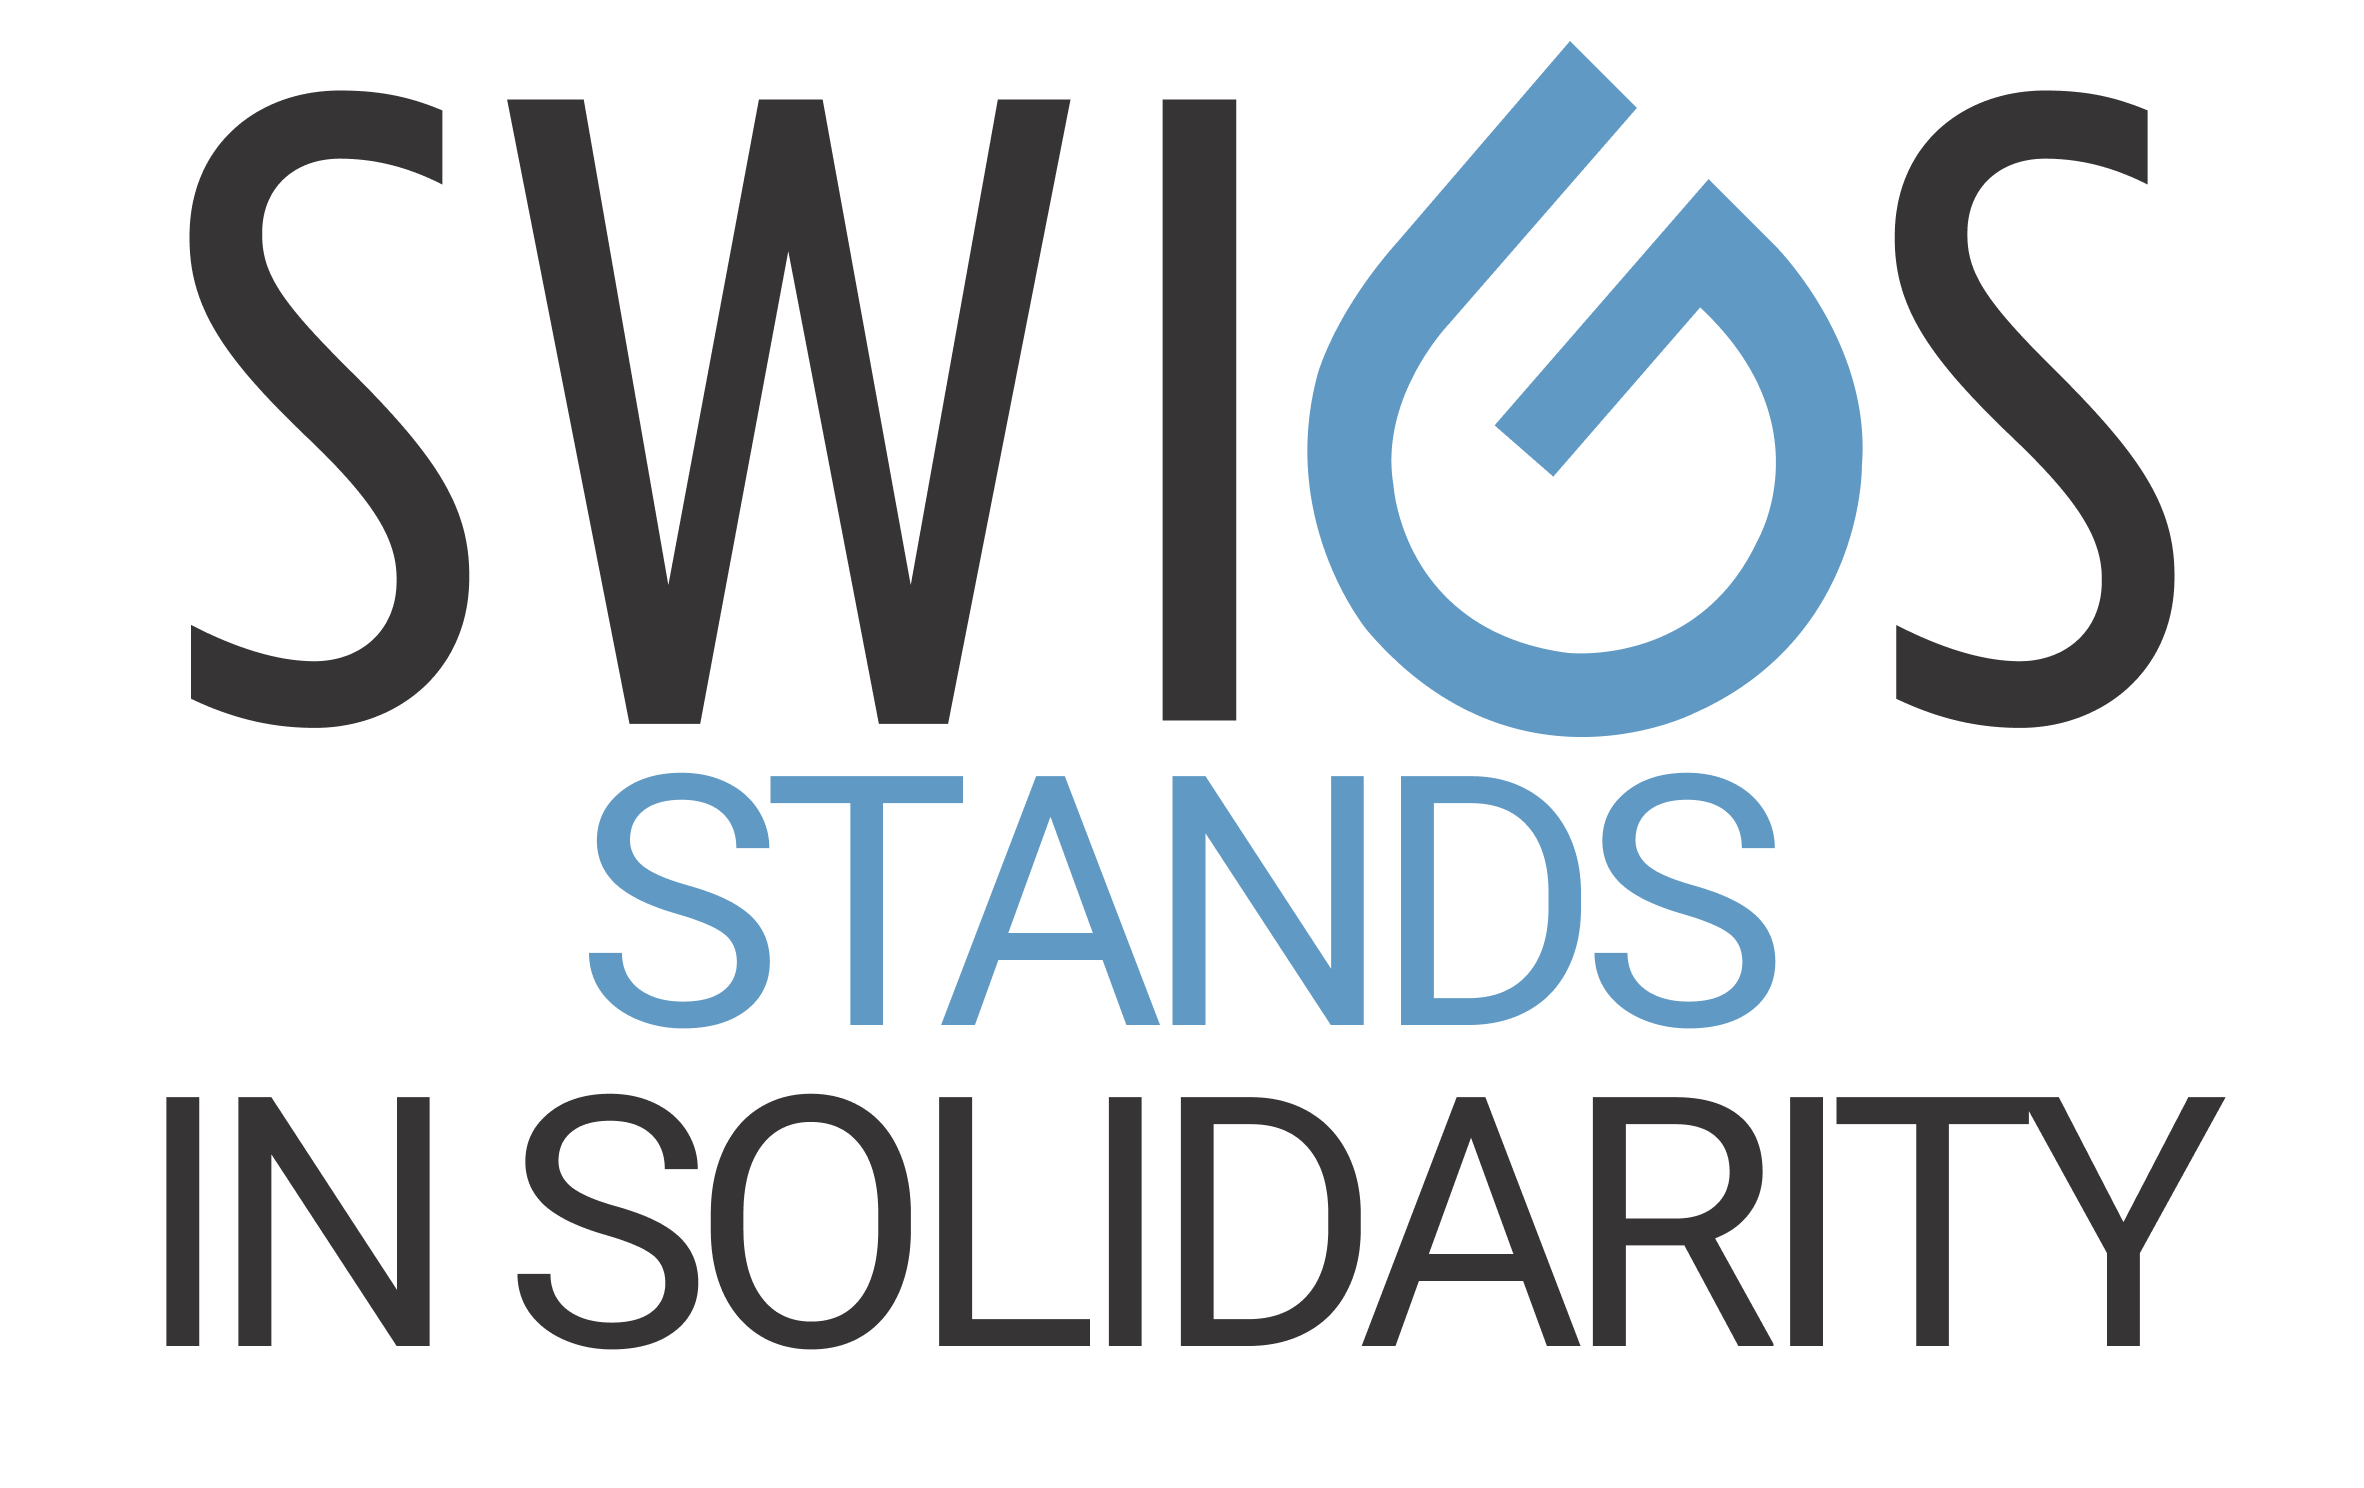 SWIGS Stands in Solidarity